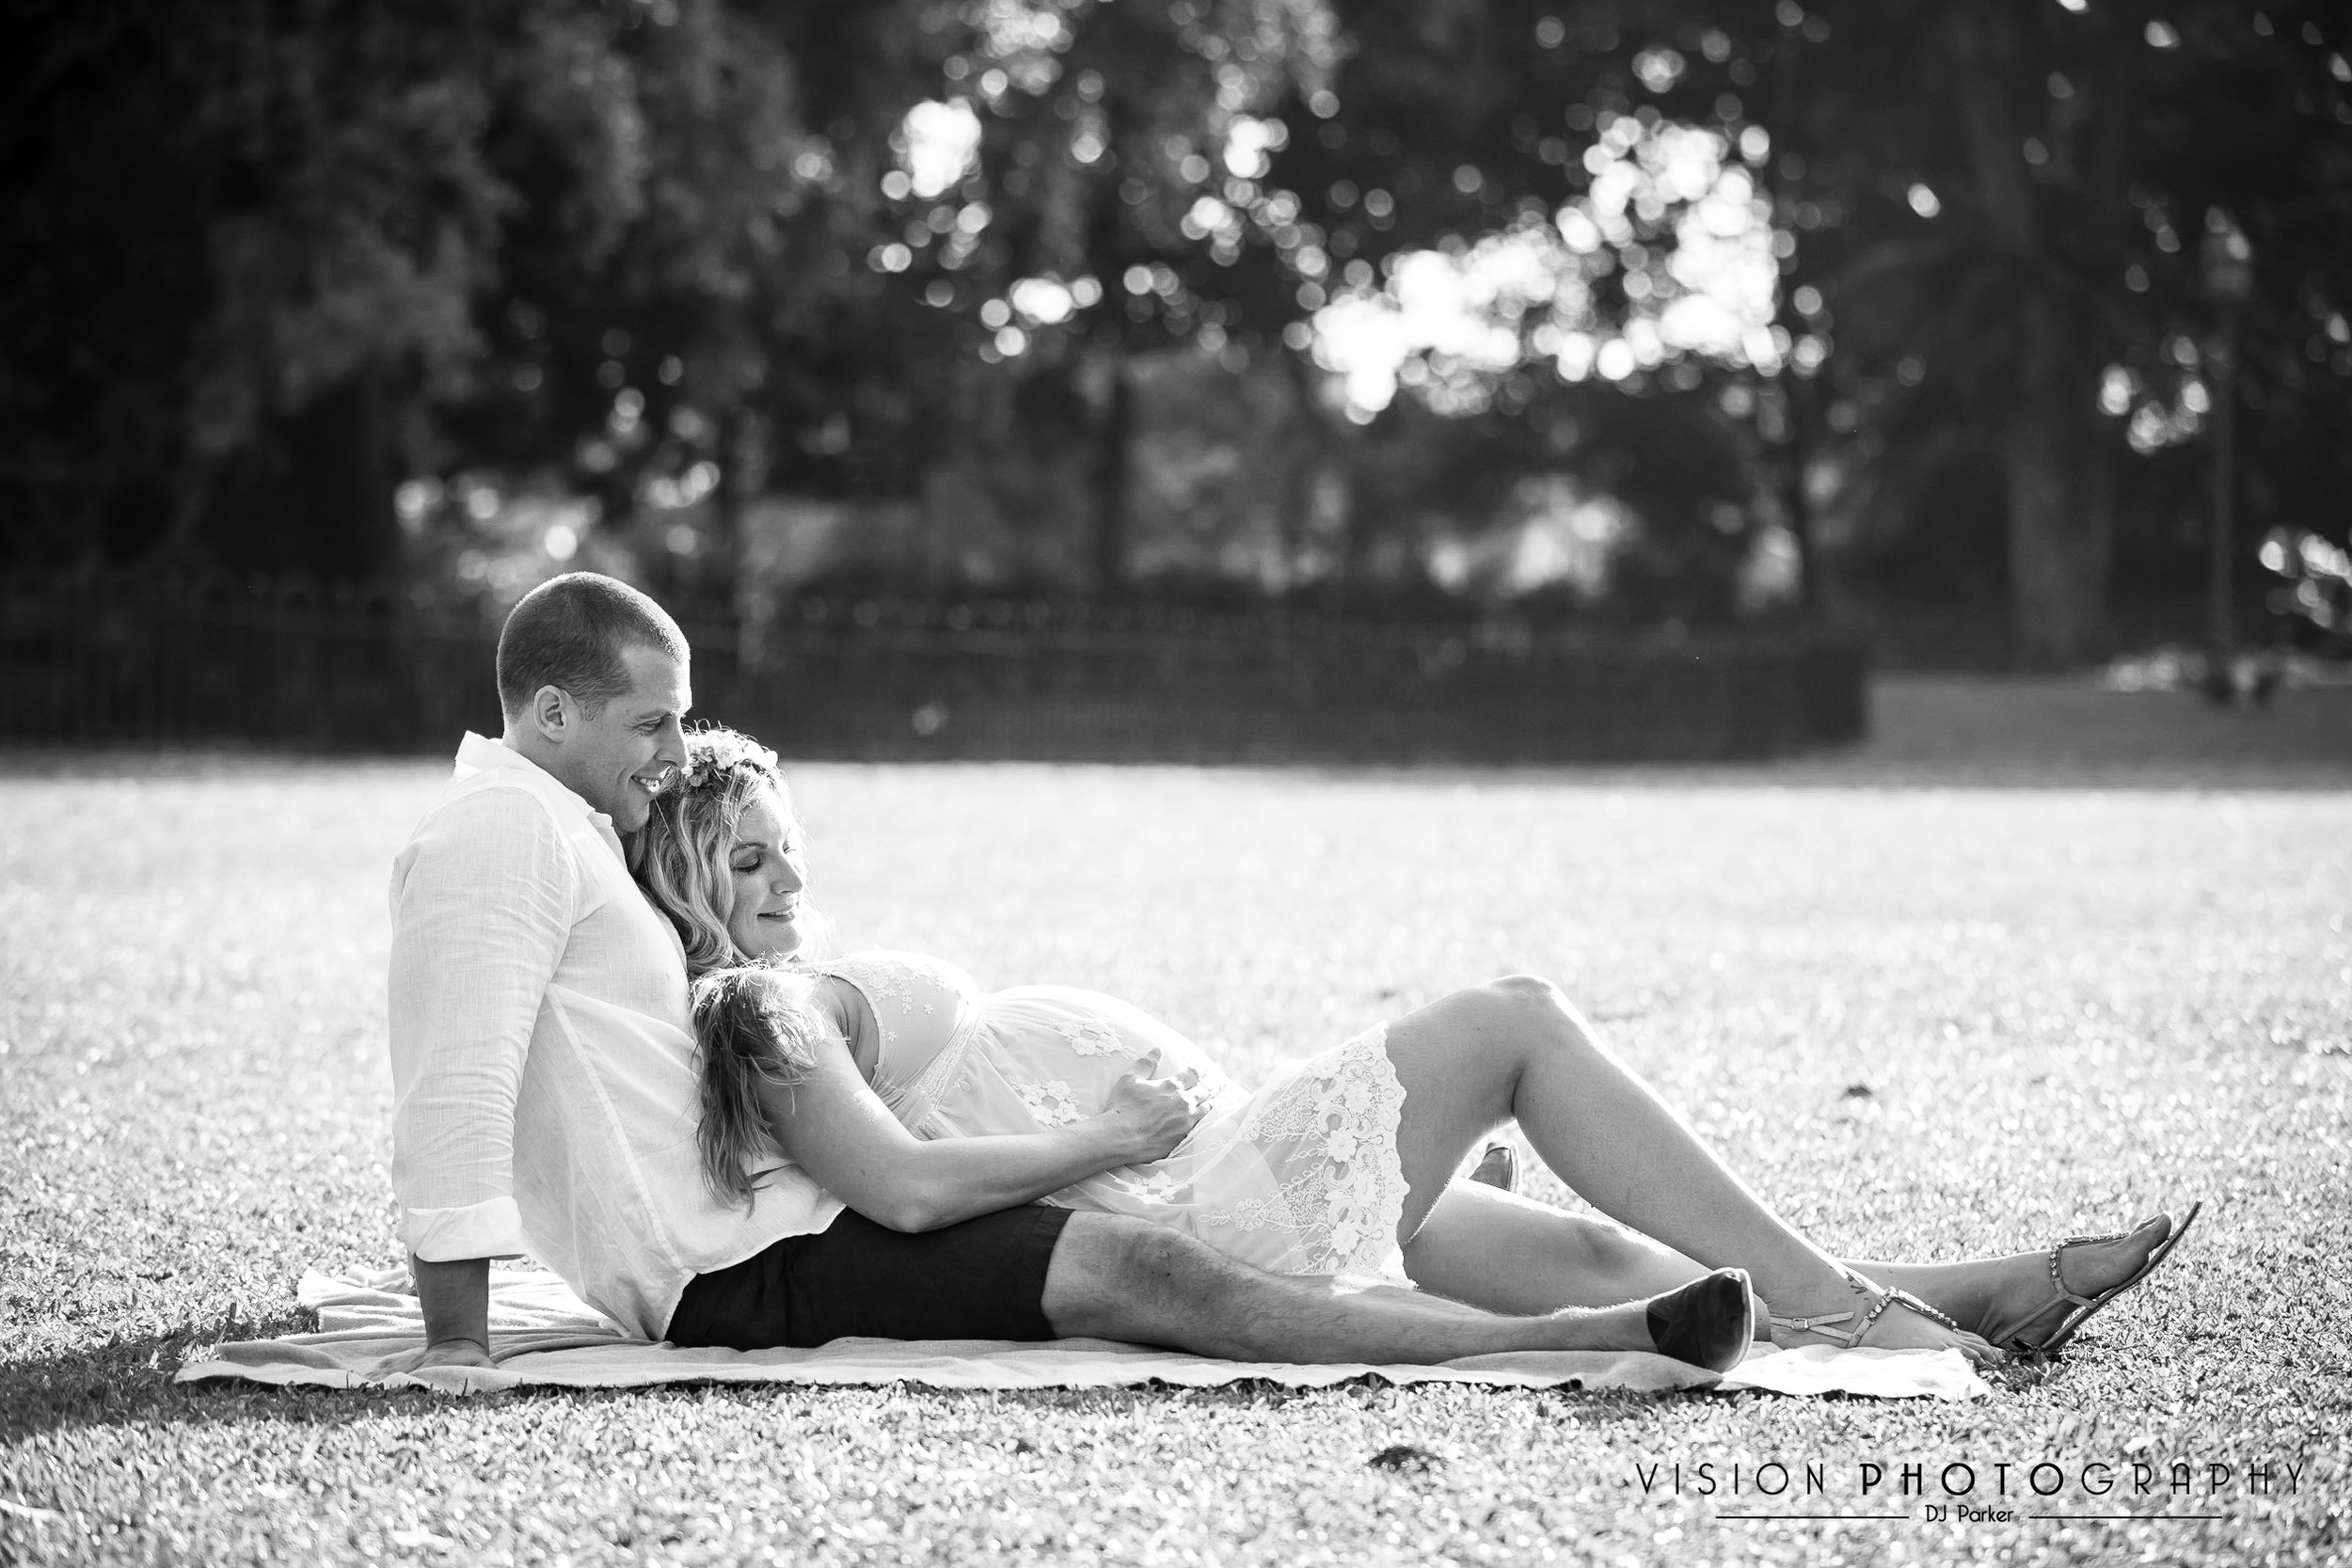 Outdoor maternity black and white